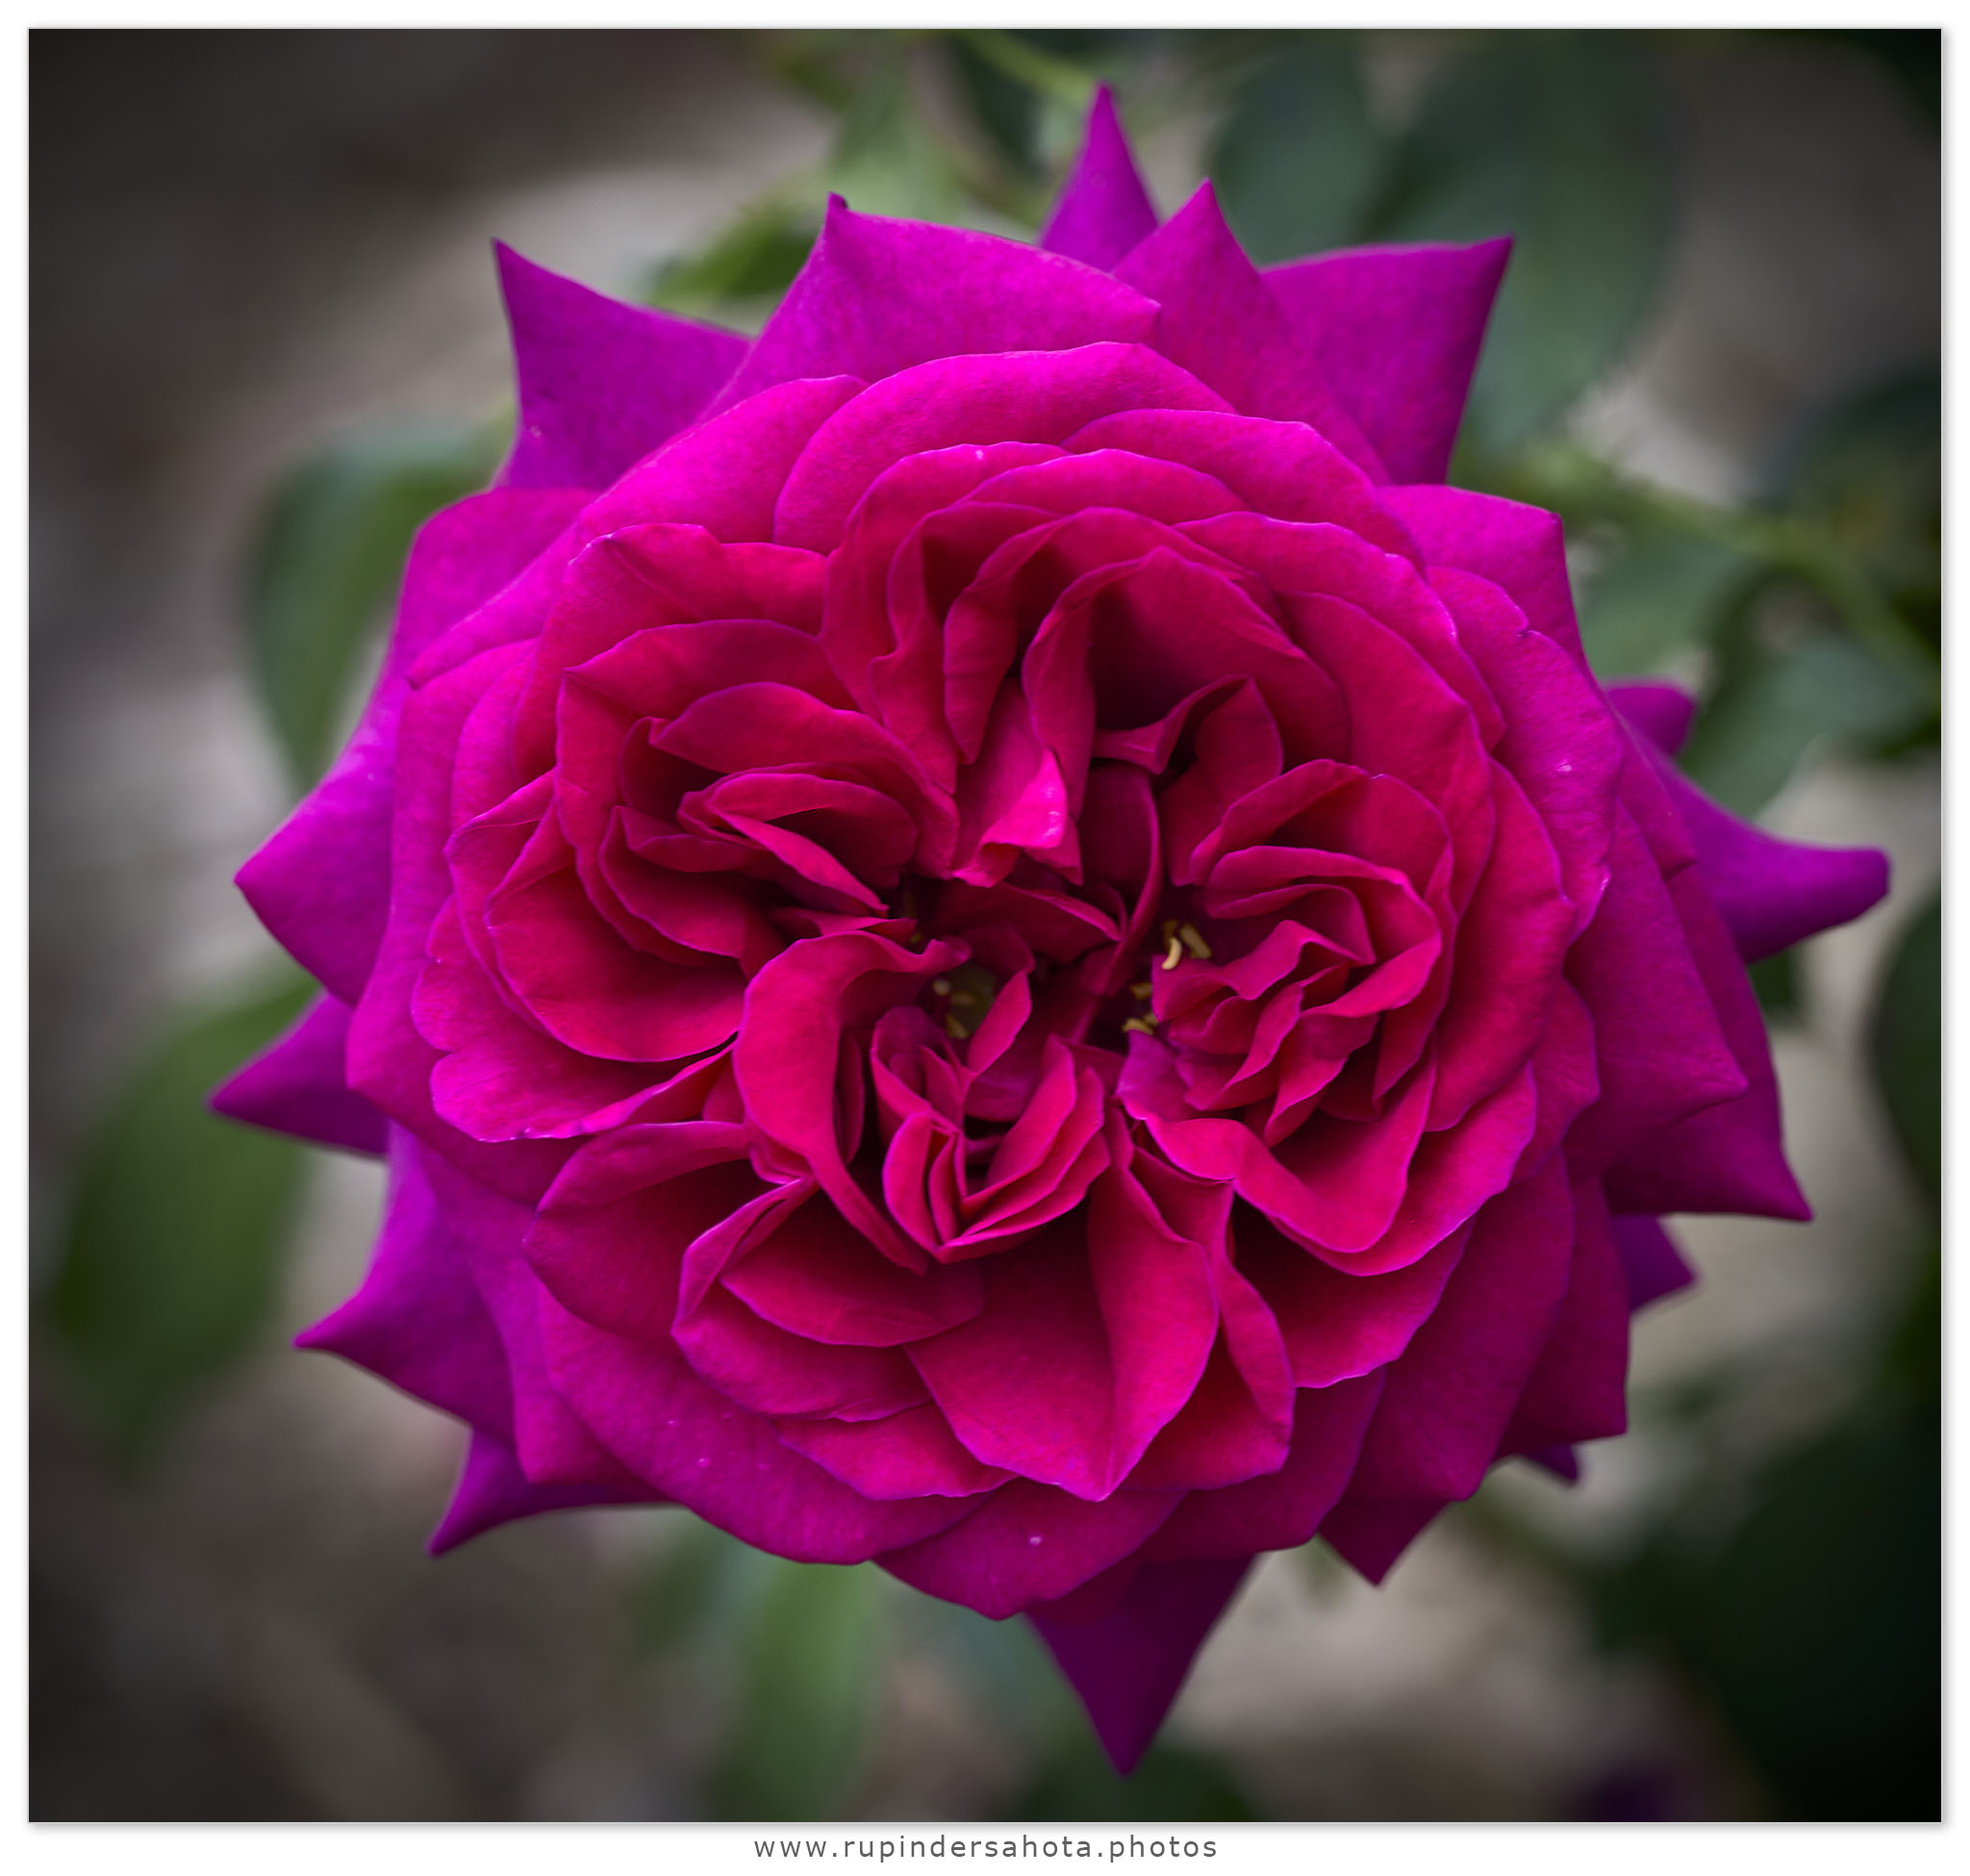 Rose by SahotaR in Regular Member Gallery